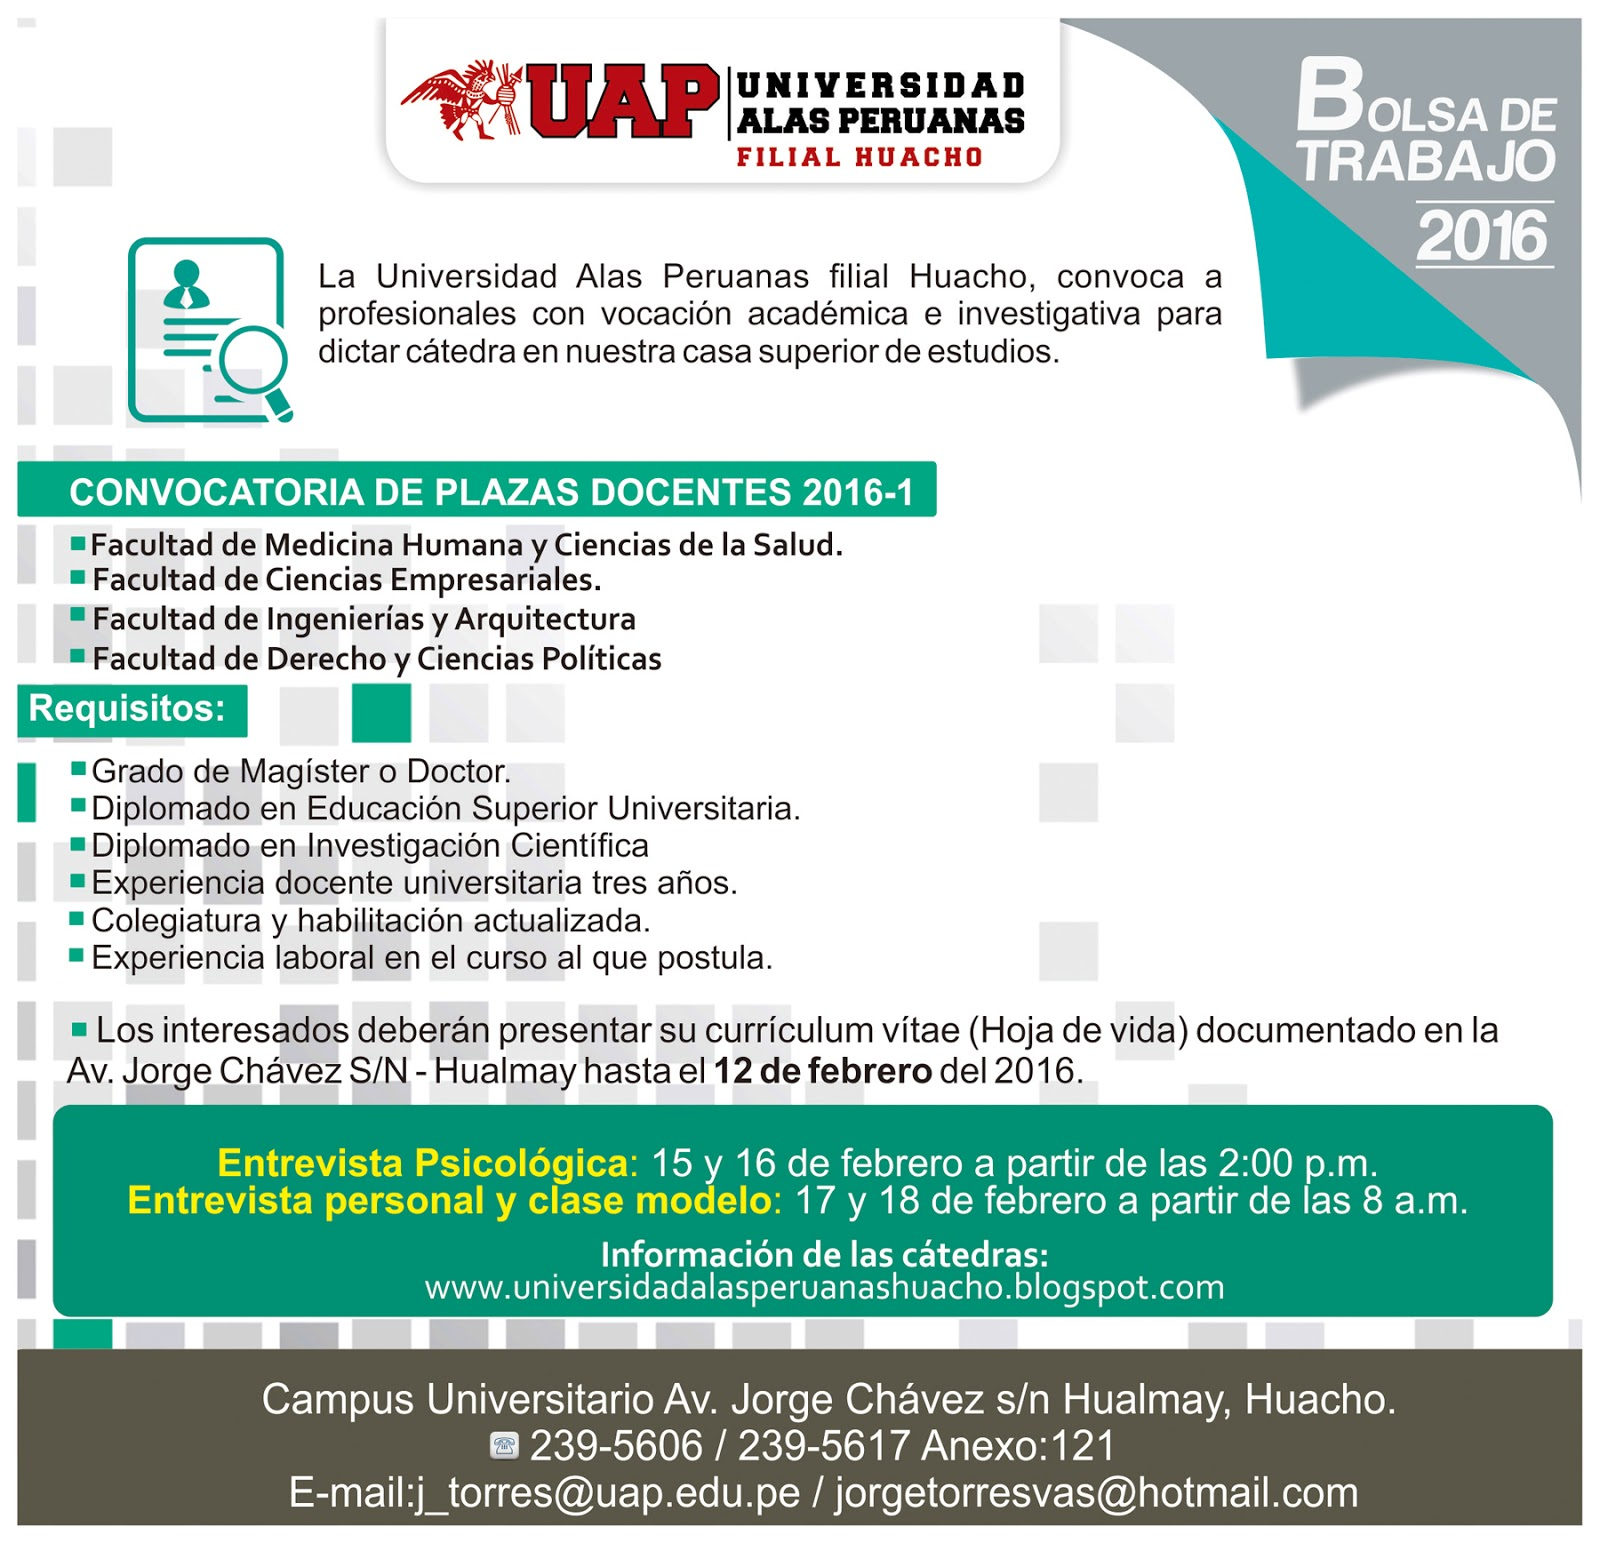 Universidad alas peruanas filial huacho convocatoria de for Convocatoria de docentes 2016